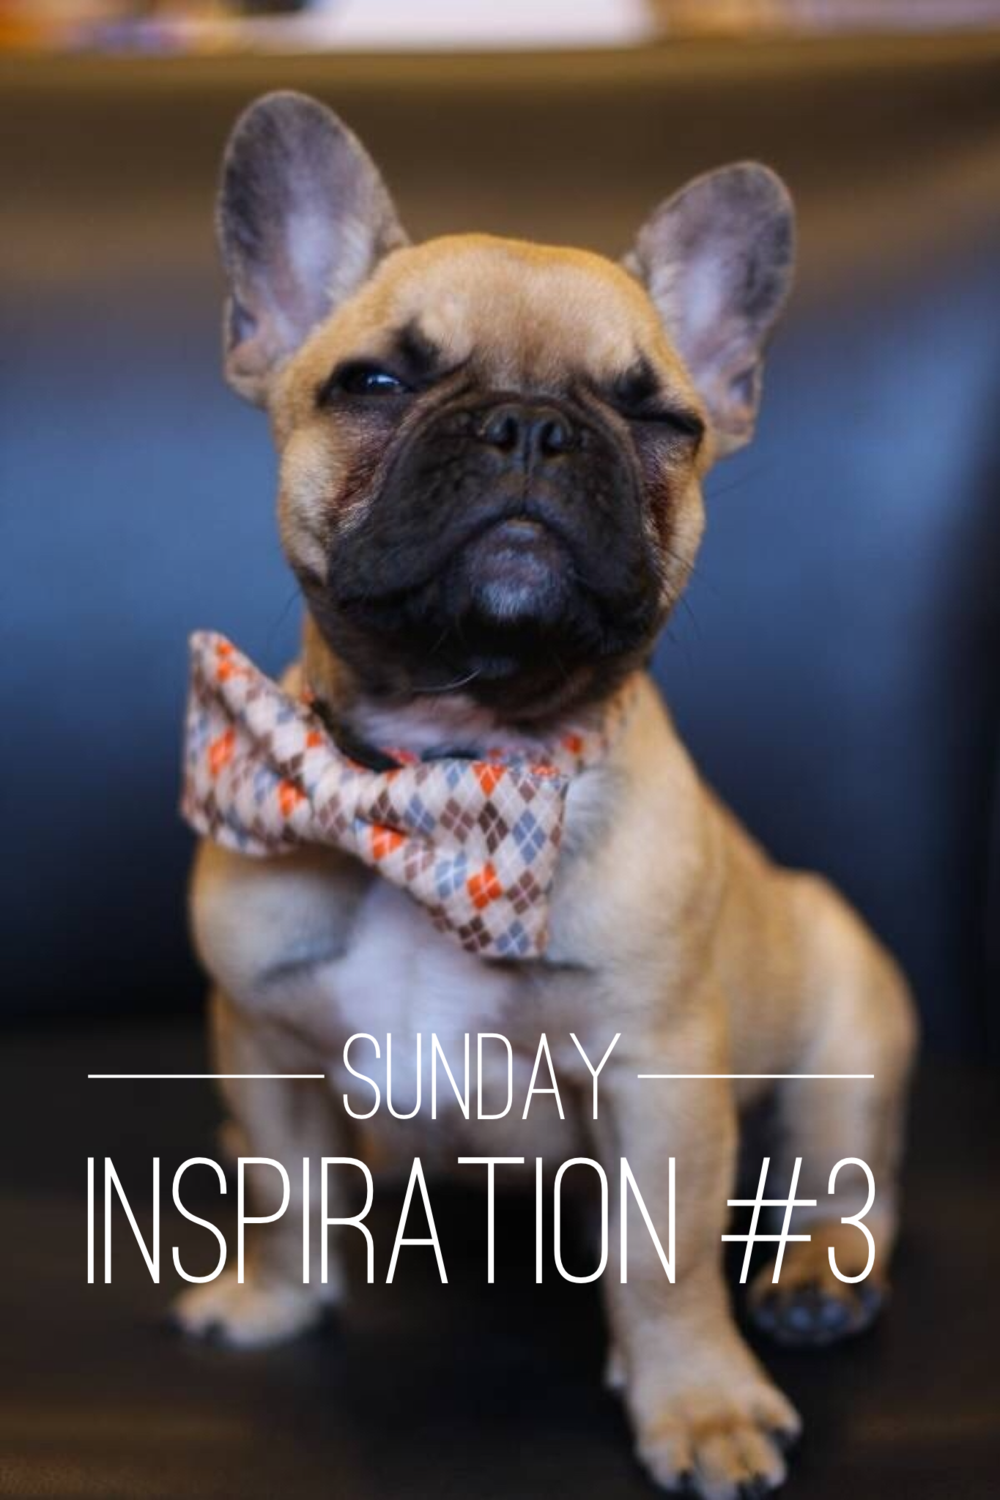 SUNDAY INSPIRATION #3